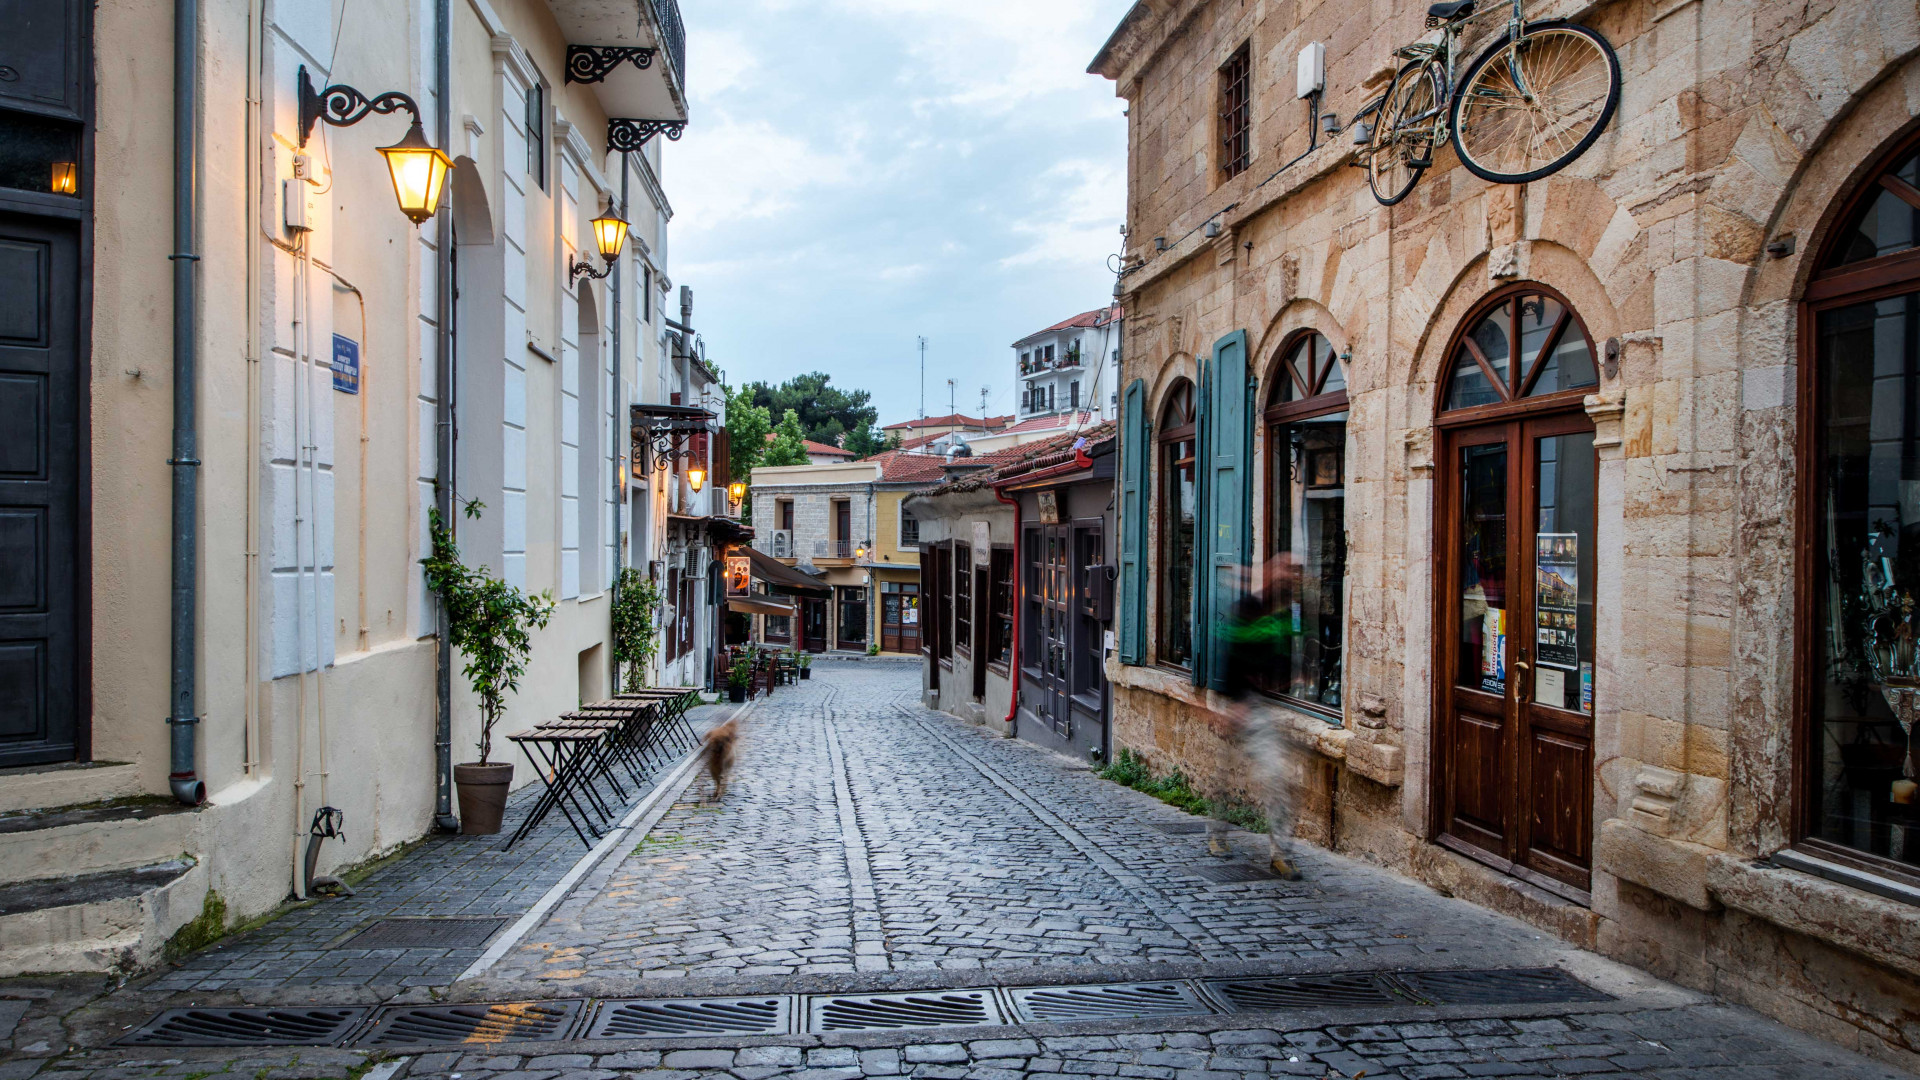 Thrace, Greece | The town centre at Xanthi